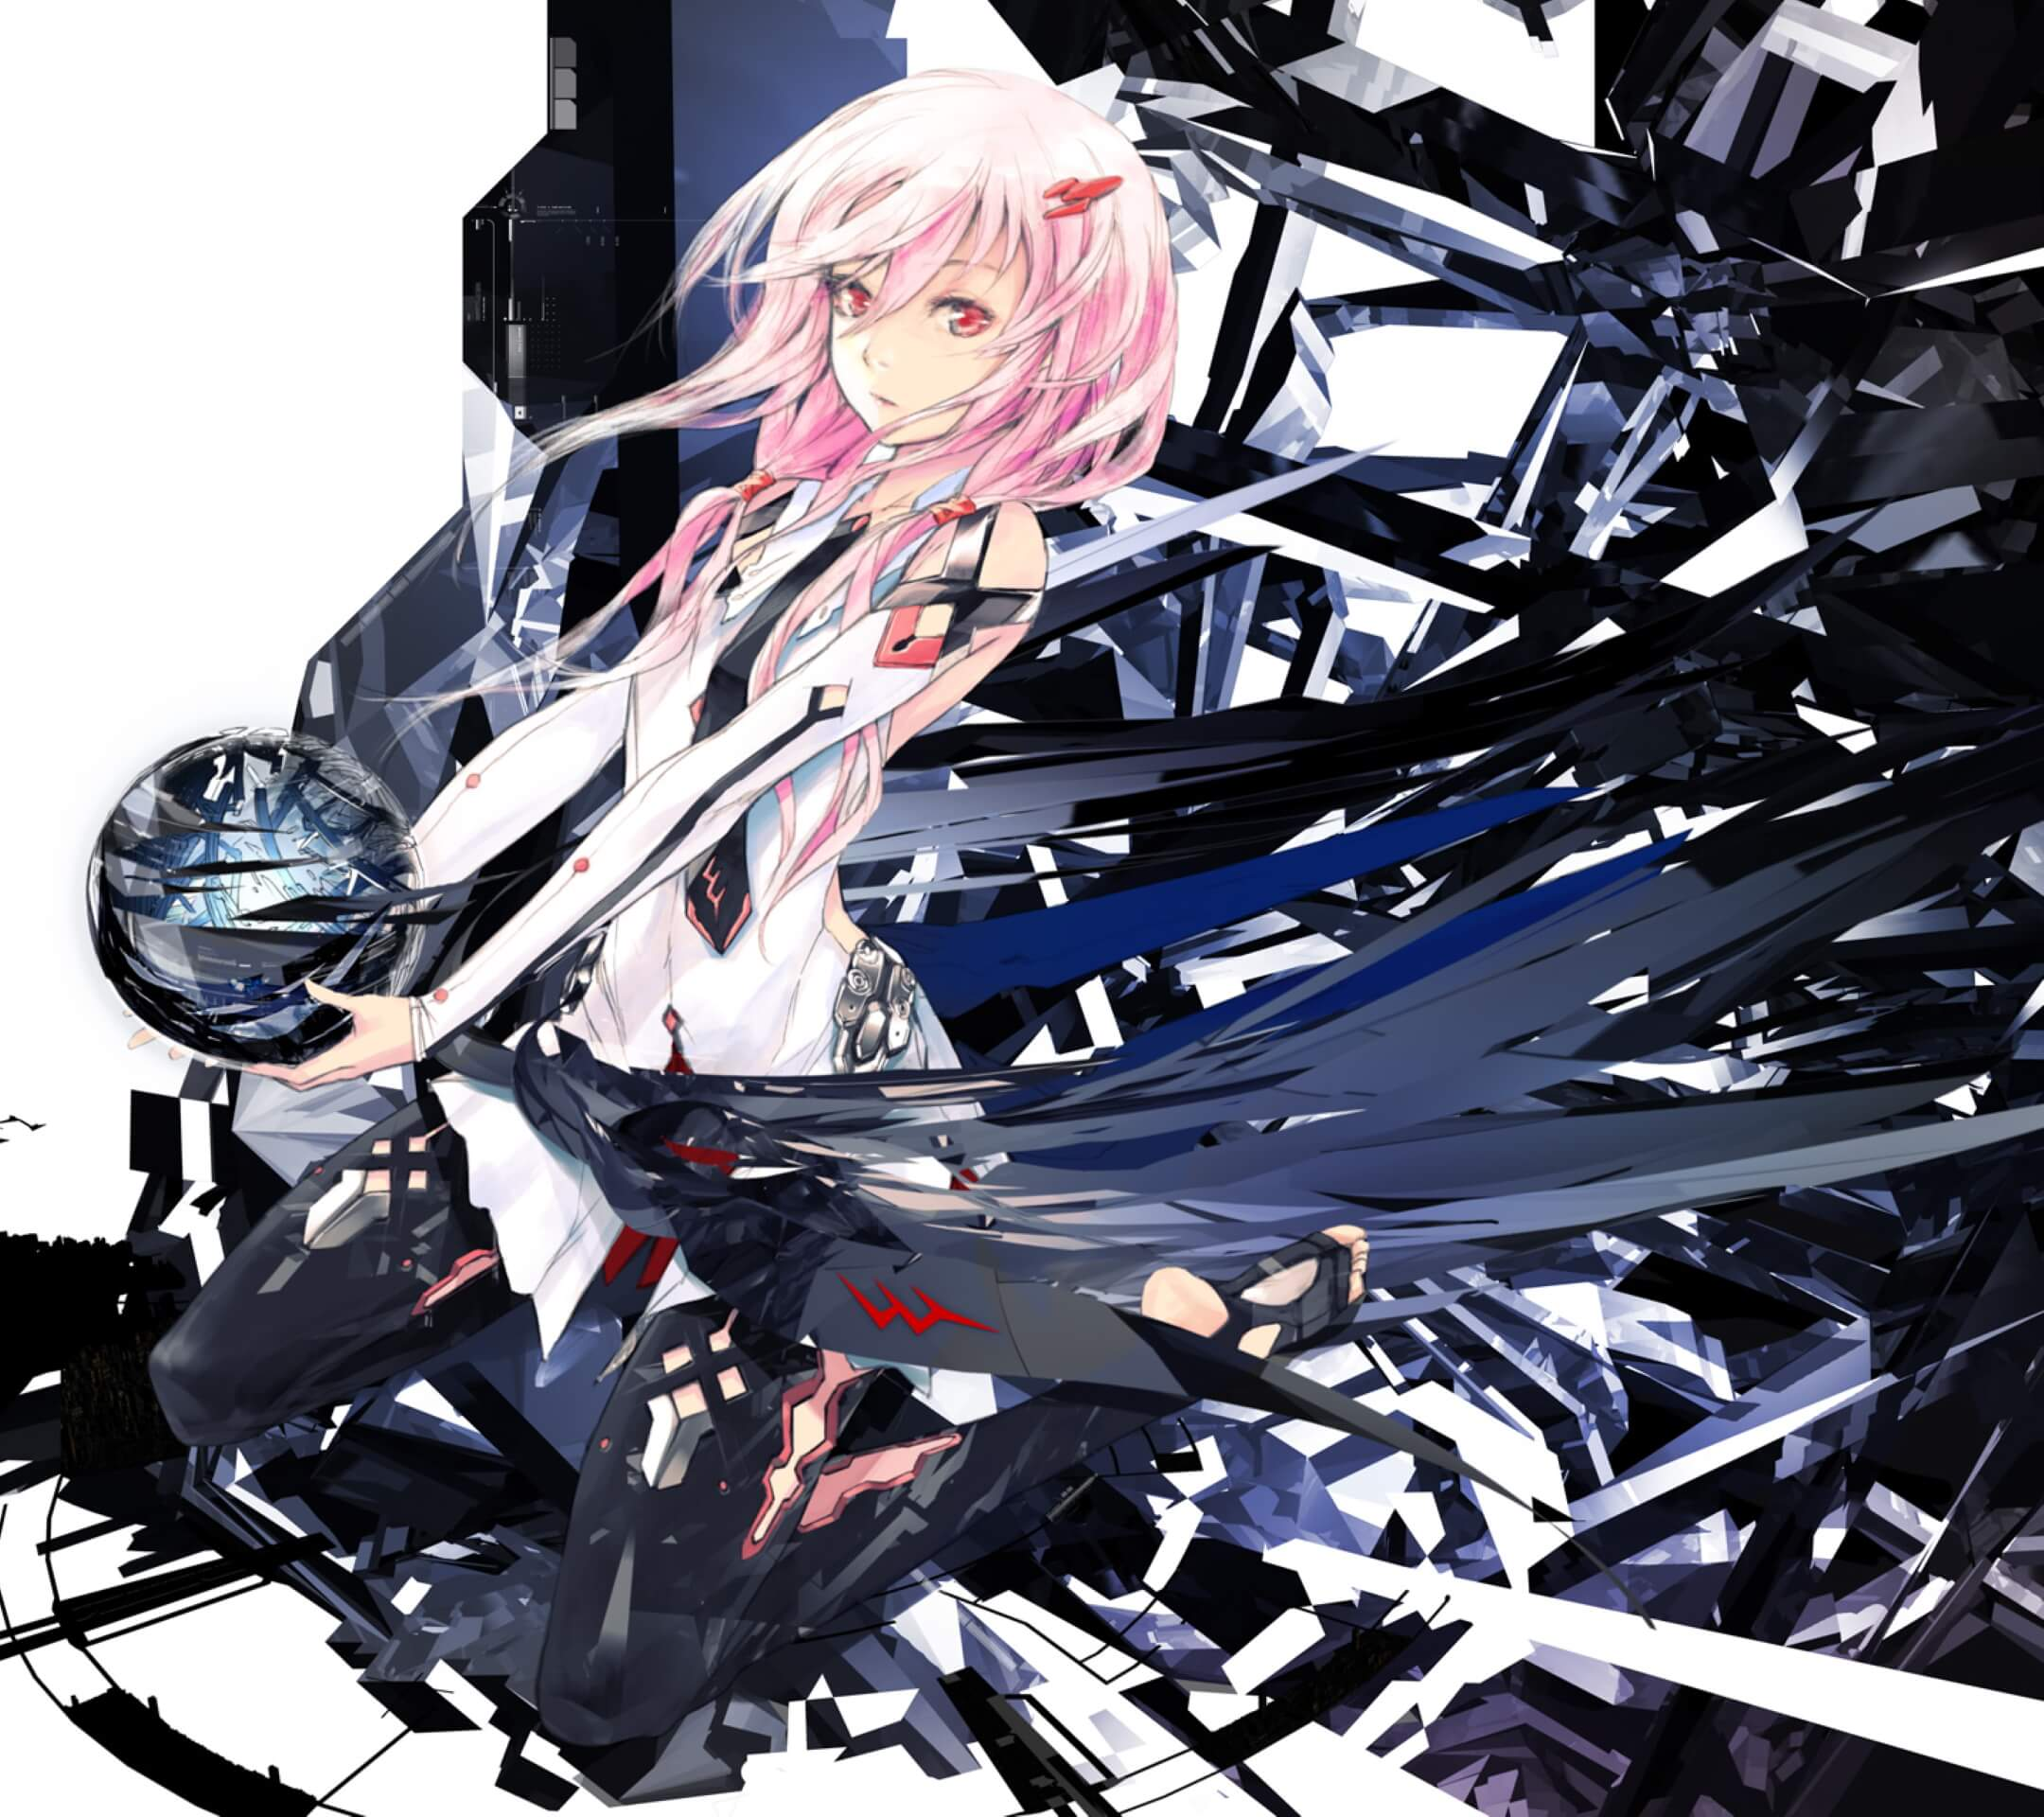 Guilty Crown Inori Yuzuriha.Android wallpaper 2160x1920